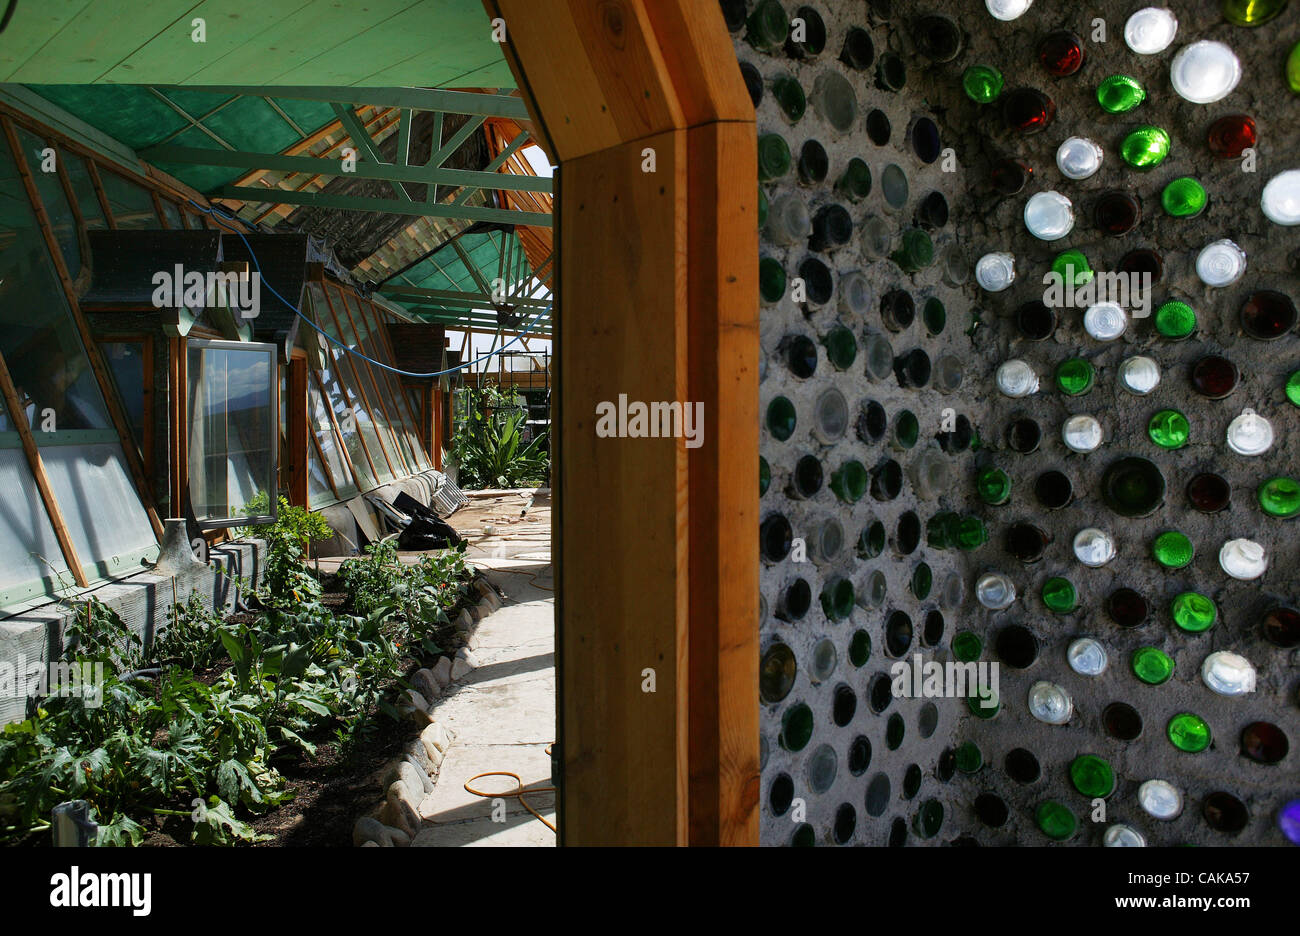 An Earthship, a house made of recycled tires, bottles, and cans in on design home design, matrix planting design, small farm layout and design, ecological home design, international home design, future home design, love home design, basic home design, secure home design, organic home design, garden home design, family home design, cost-effective home design, cat home design, self-sustaining garden design, eco-friendly modular home design, green home design, healthy home design, self-sufficient home design, self-sufficient farm design,